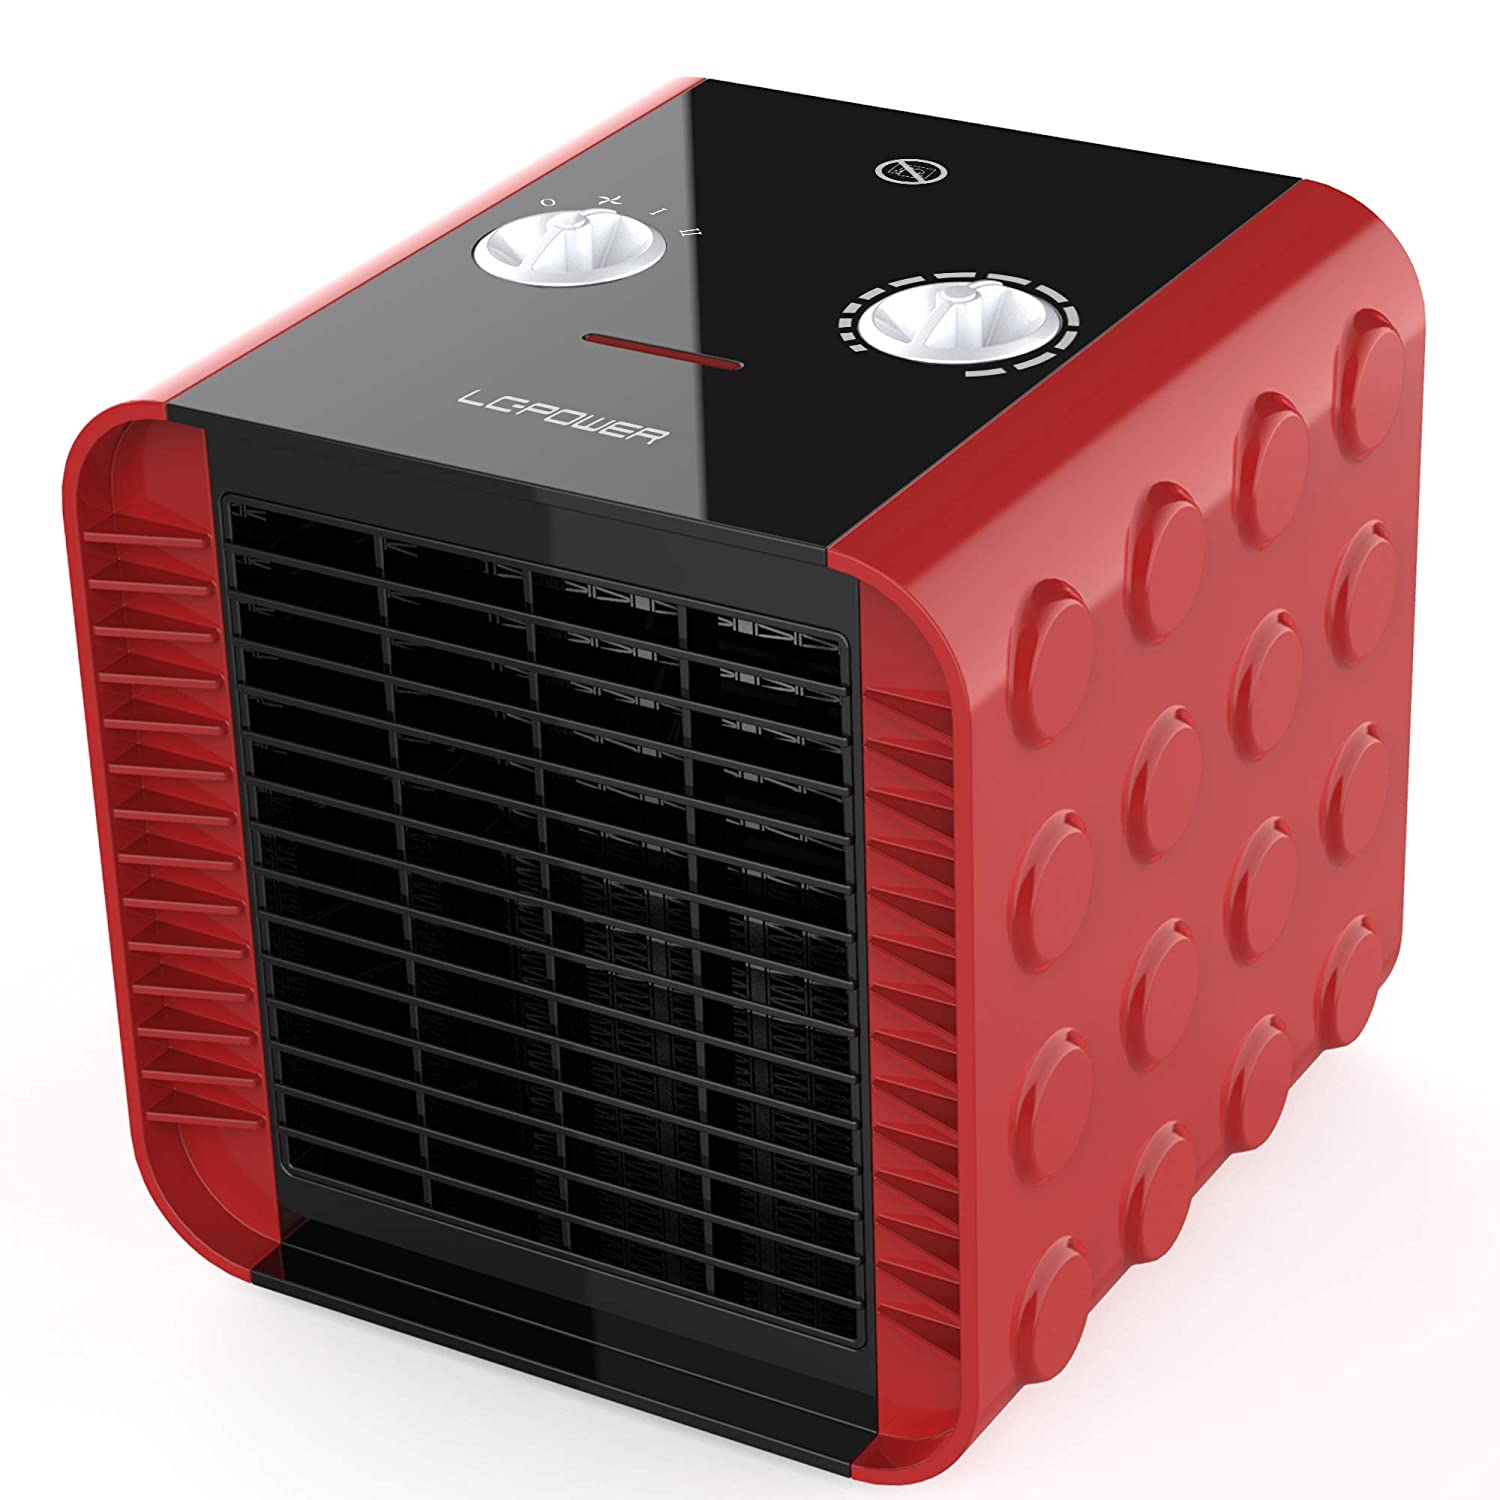 LCPOWER Space Heater,Portable Electric Space Heater with Adjustable Thermostat,Overheat and Tip-Over Protection,Ceramic Small Heater for Office,Home Red,750W 1500W